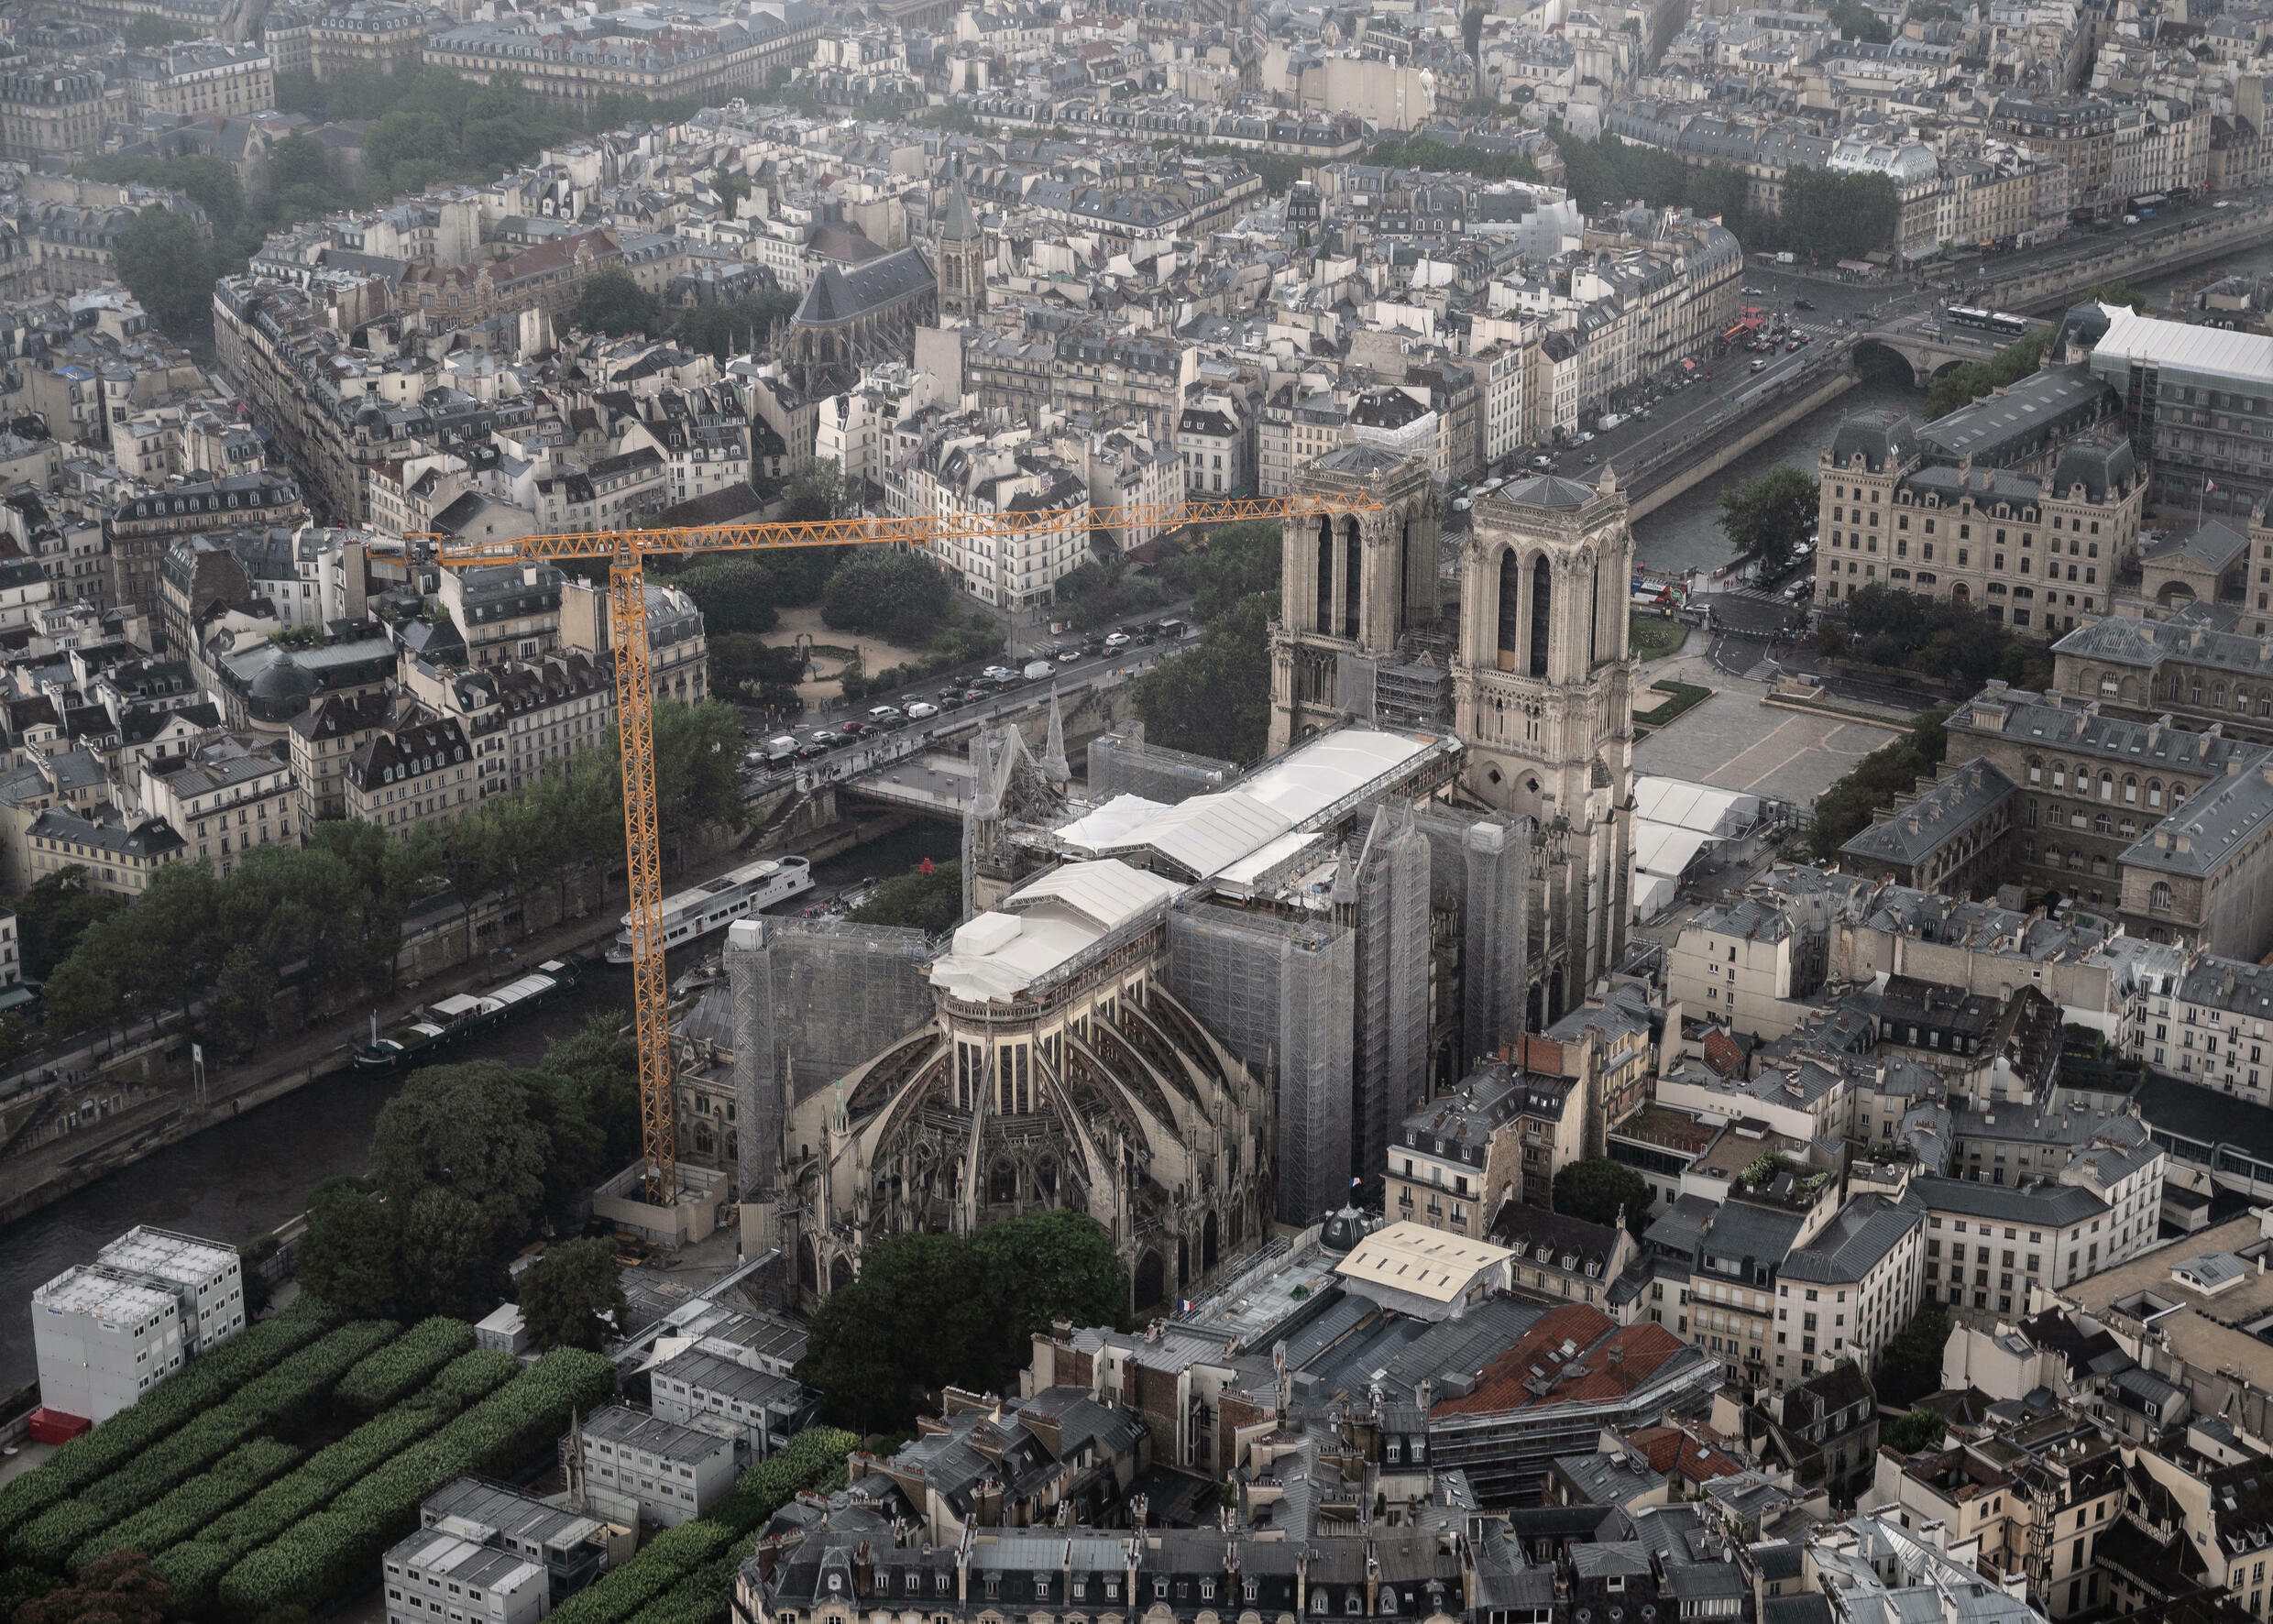 Notre-Dame de Paris survived the blaze in 2019, but the spire collapsed and much of the roof was destroyed